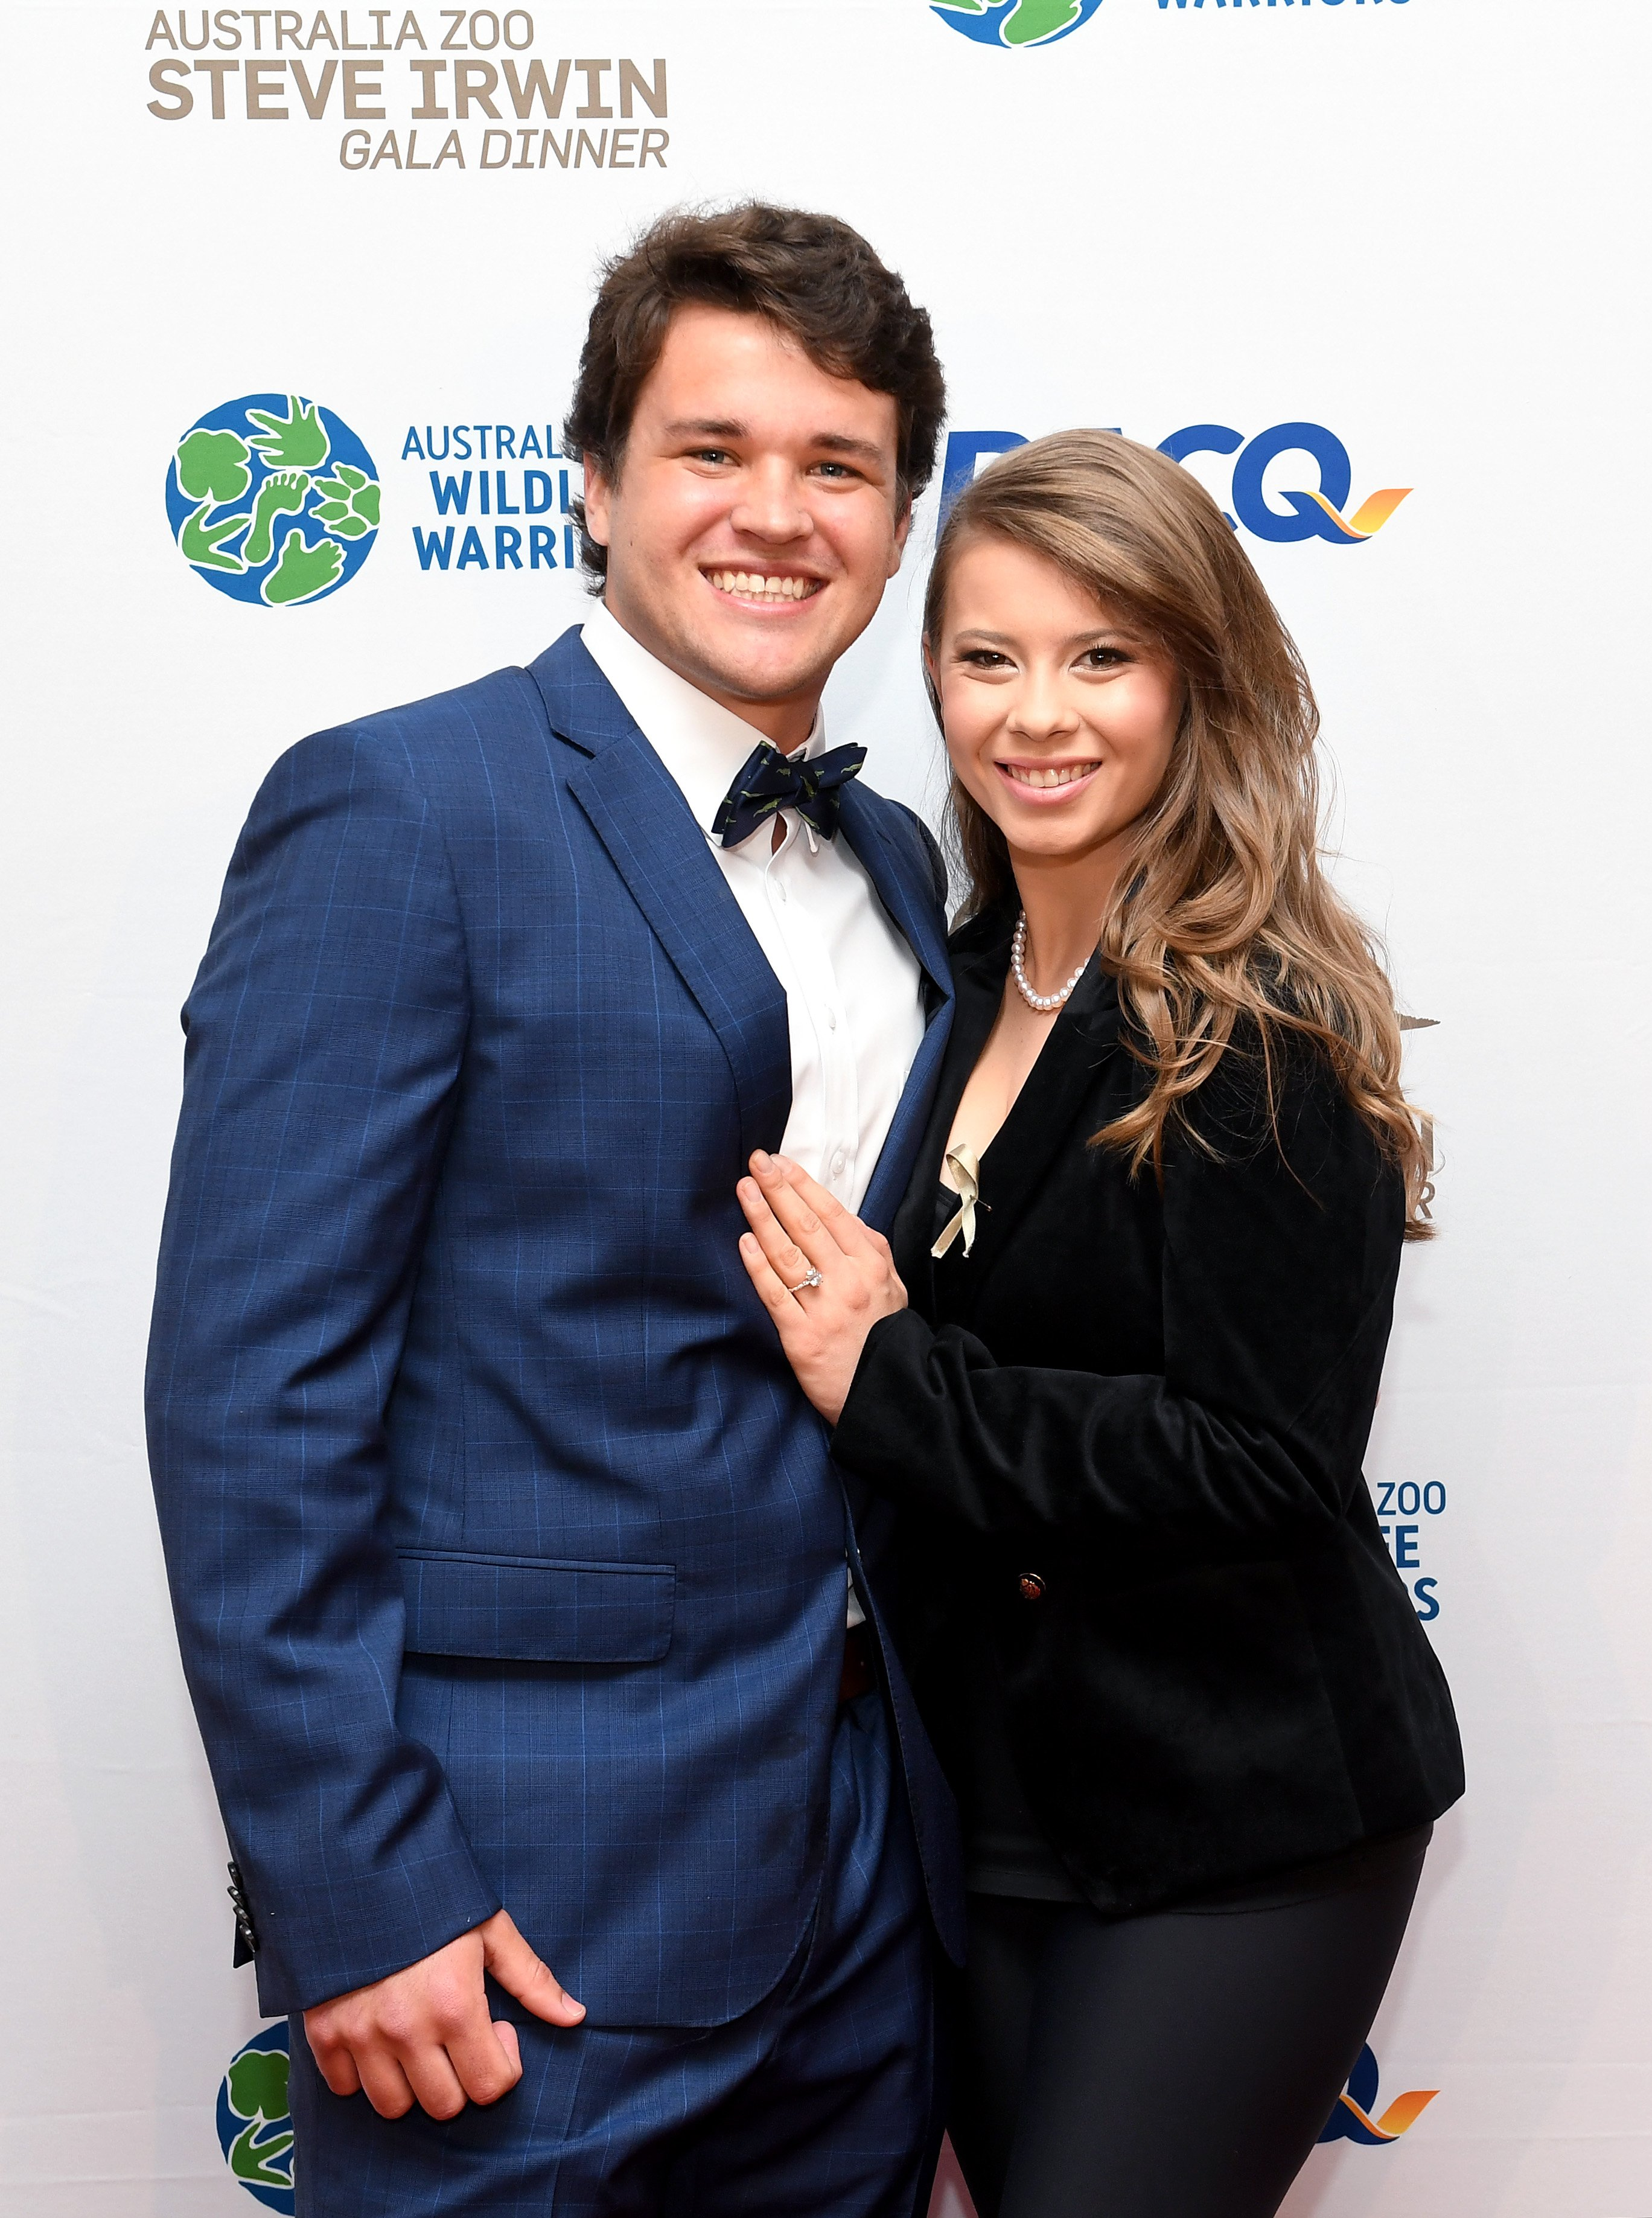 Bindi Irwin poses alongside Chandler Powell at the annual Steve Irwin Gala Dinner at Brisbane Convention & Exhibition Centre on November 09, 2019 in Brisbane, Australia | Photo: Getty Images